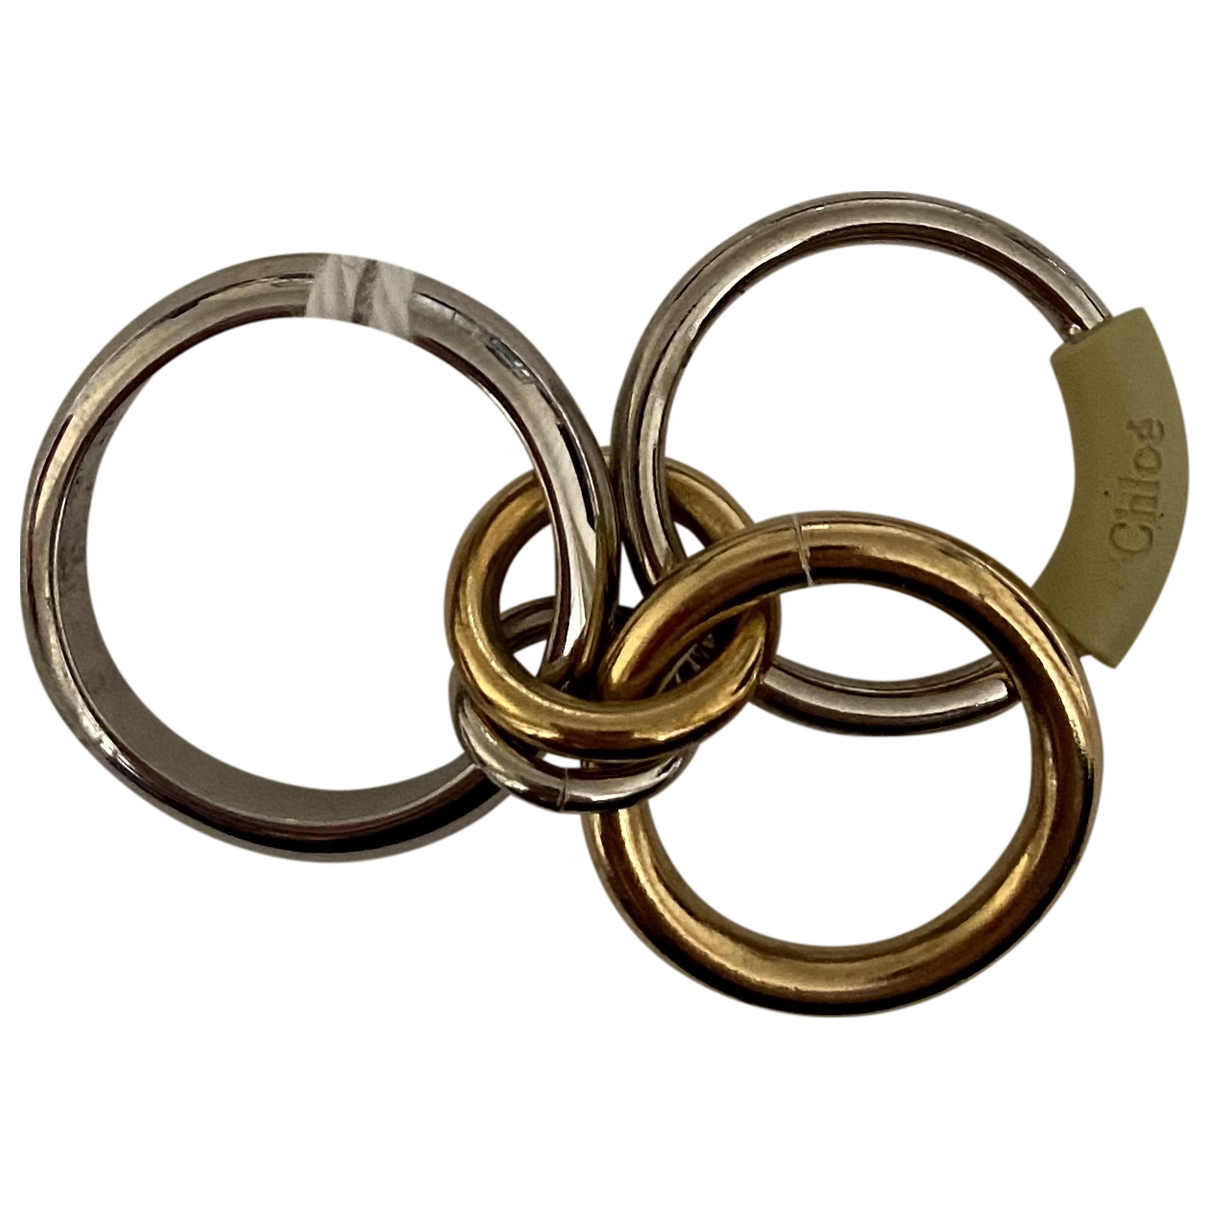 Chloé N Metallic Metal ring for Women 7 ½ US